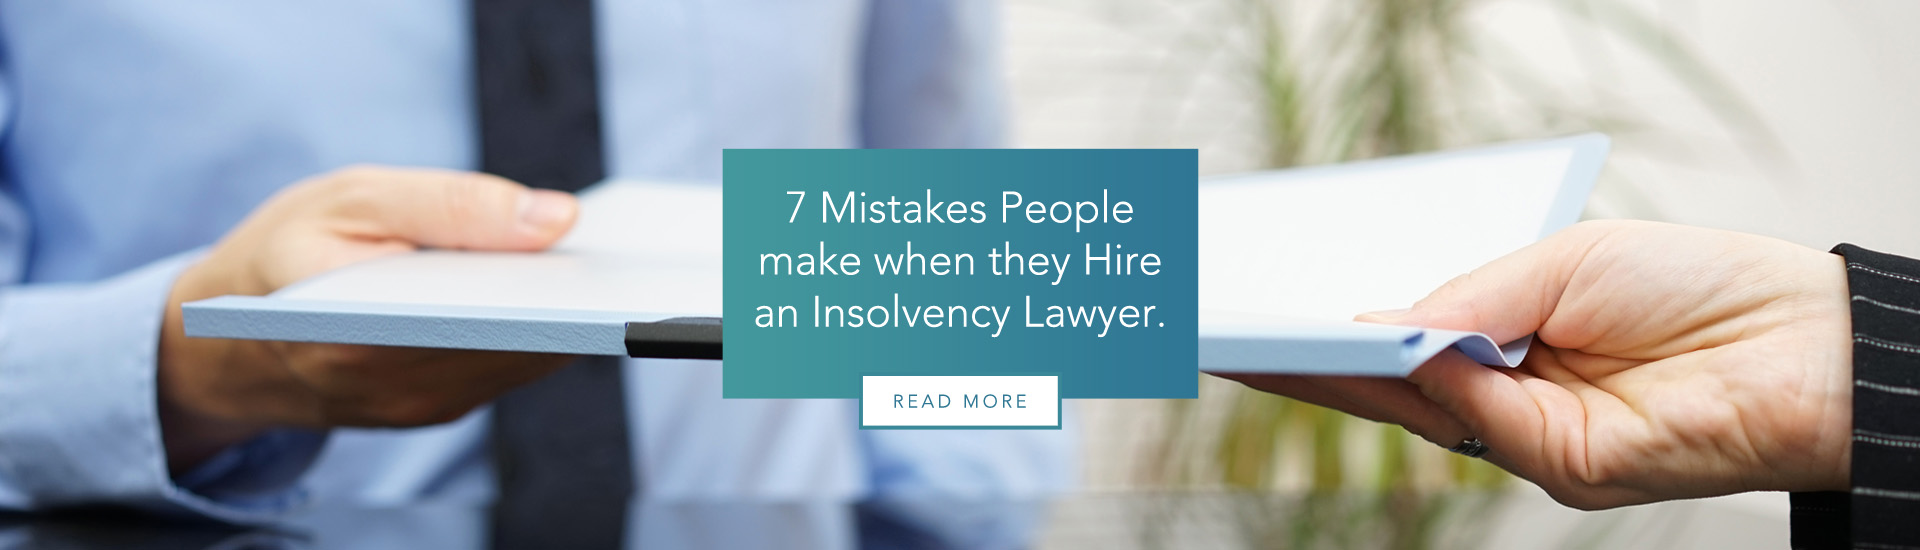 The 7 mistakes people make when they hire an insolvency lawyer